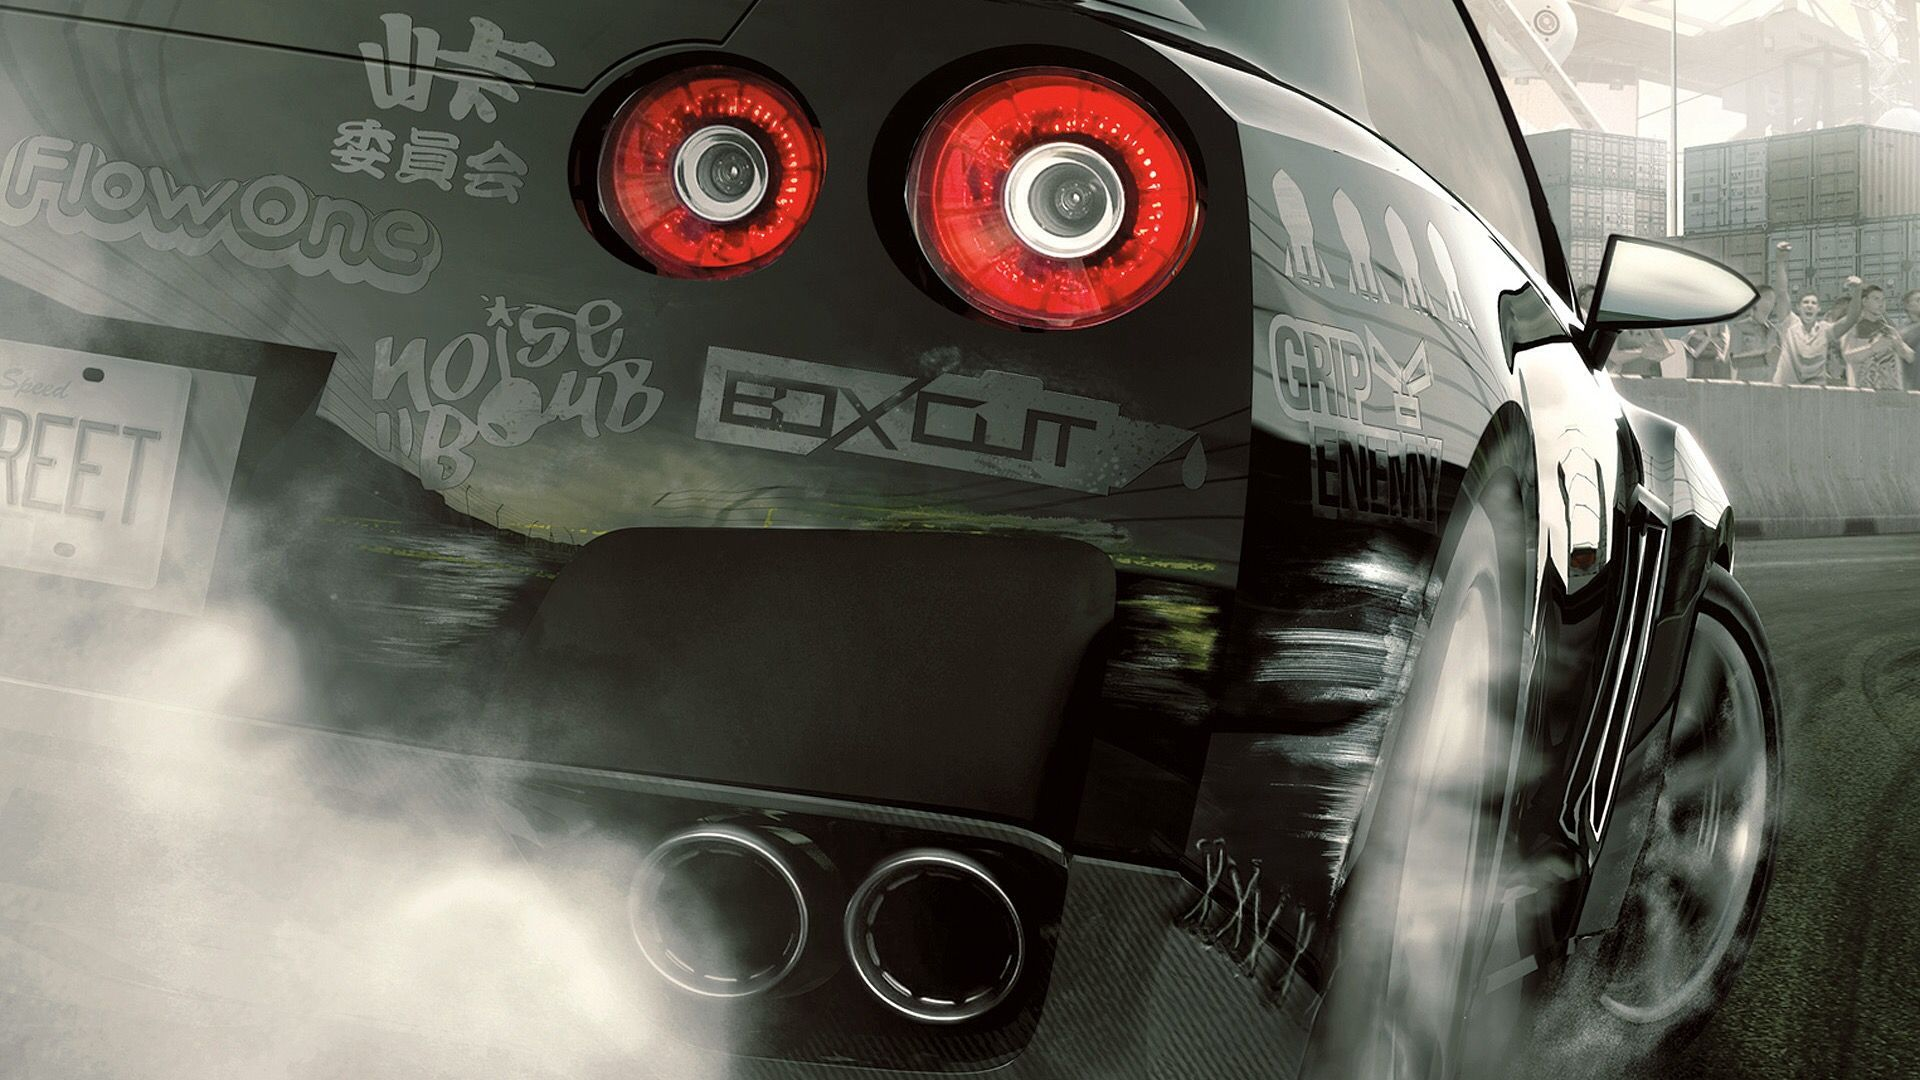 Pin By Osama Nasir On Love Need For Speed Need For Speed Cars